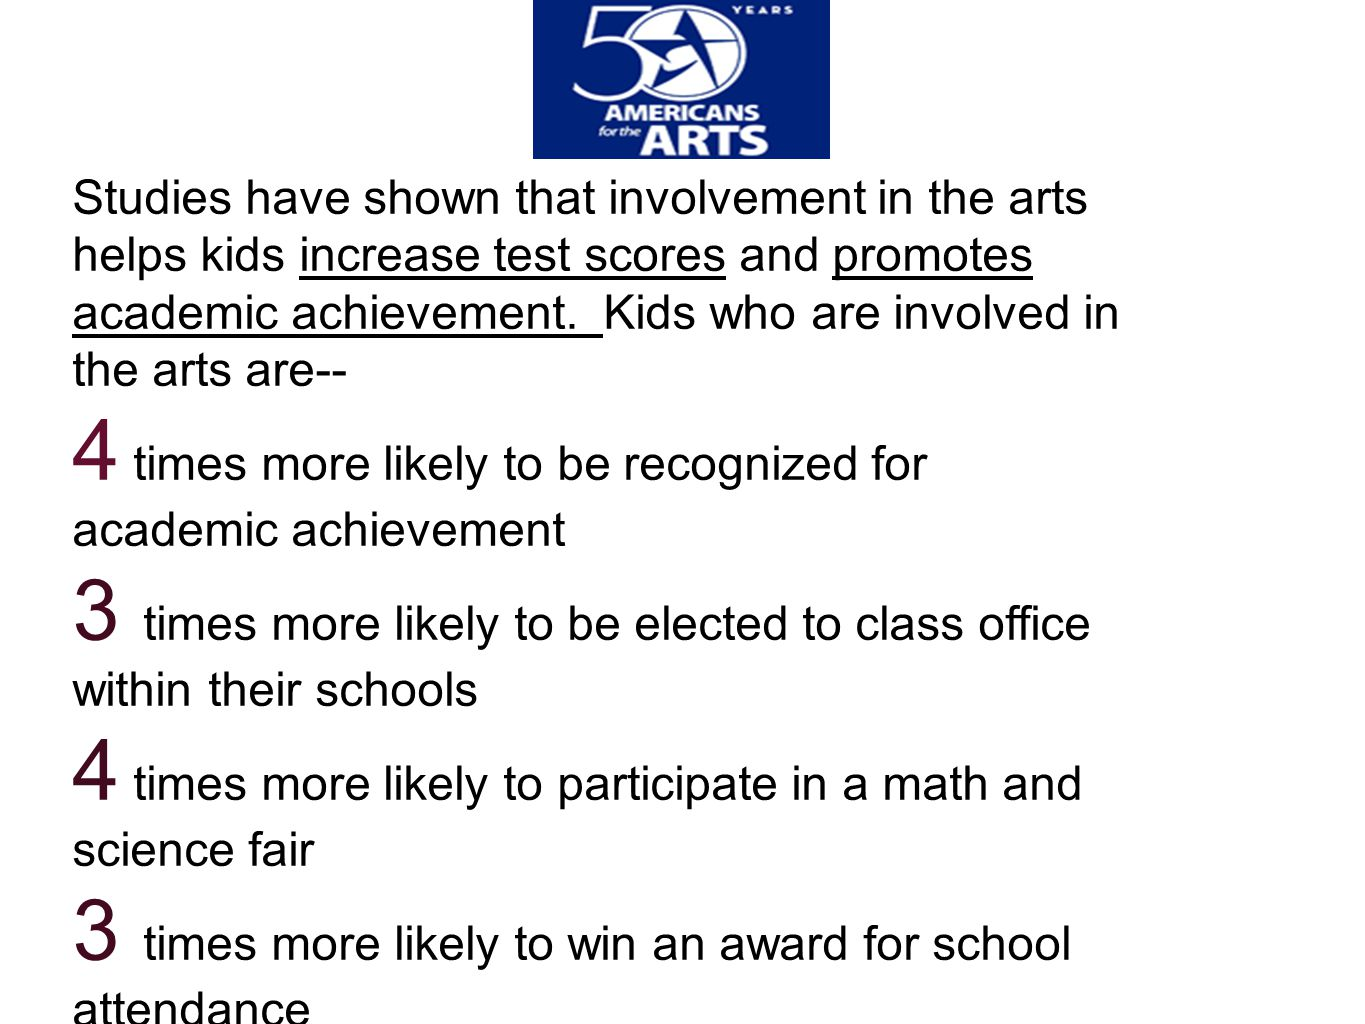 Studies have shown that involvement in the arts helps kids increase test scores and promotes academic achievement.